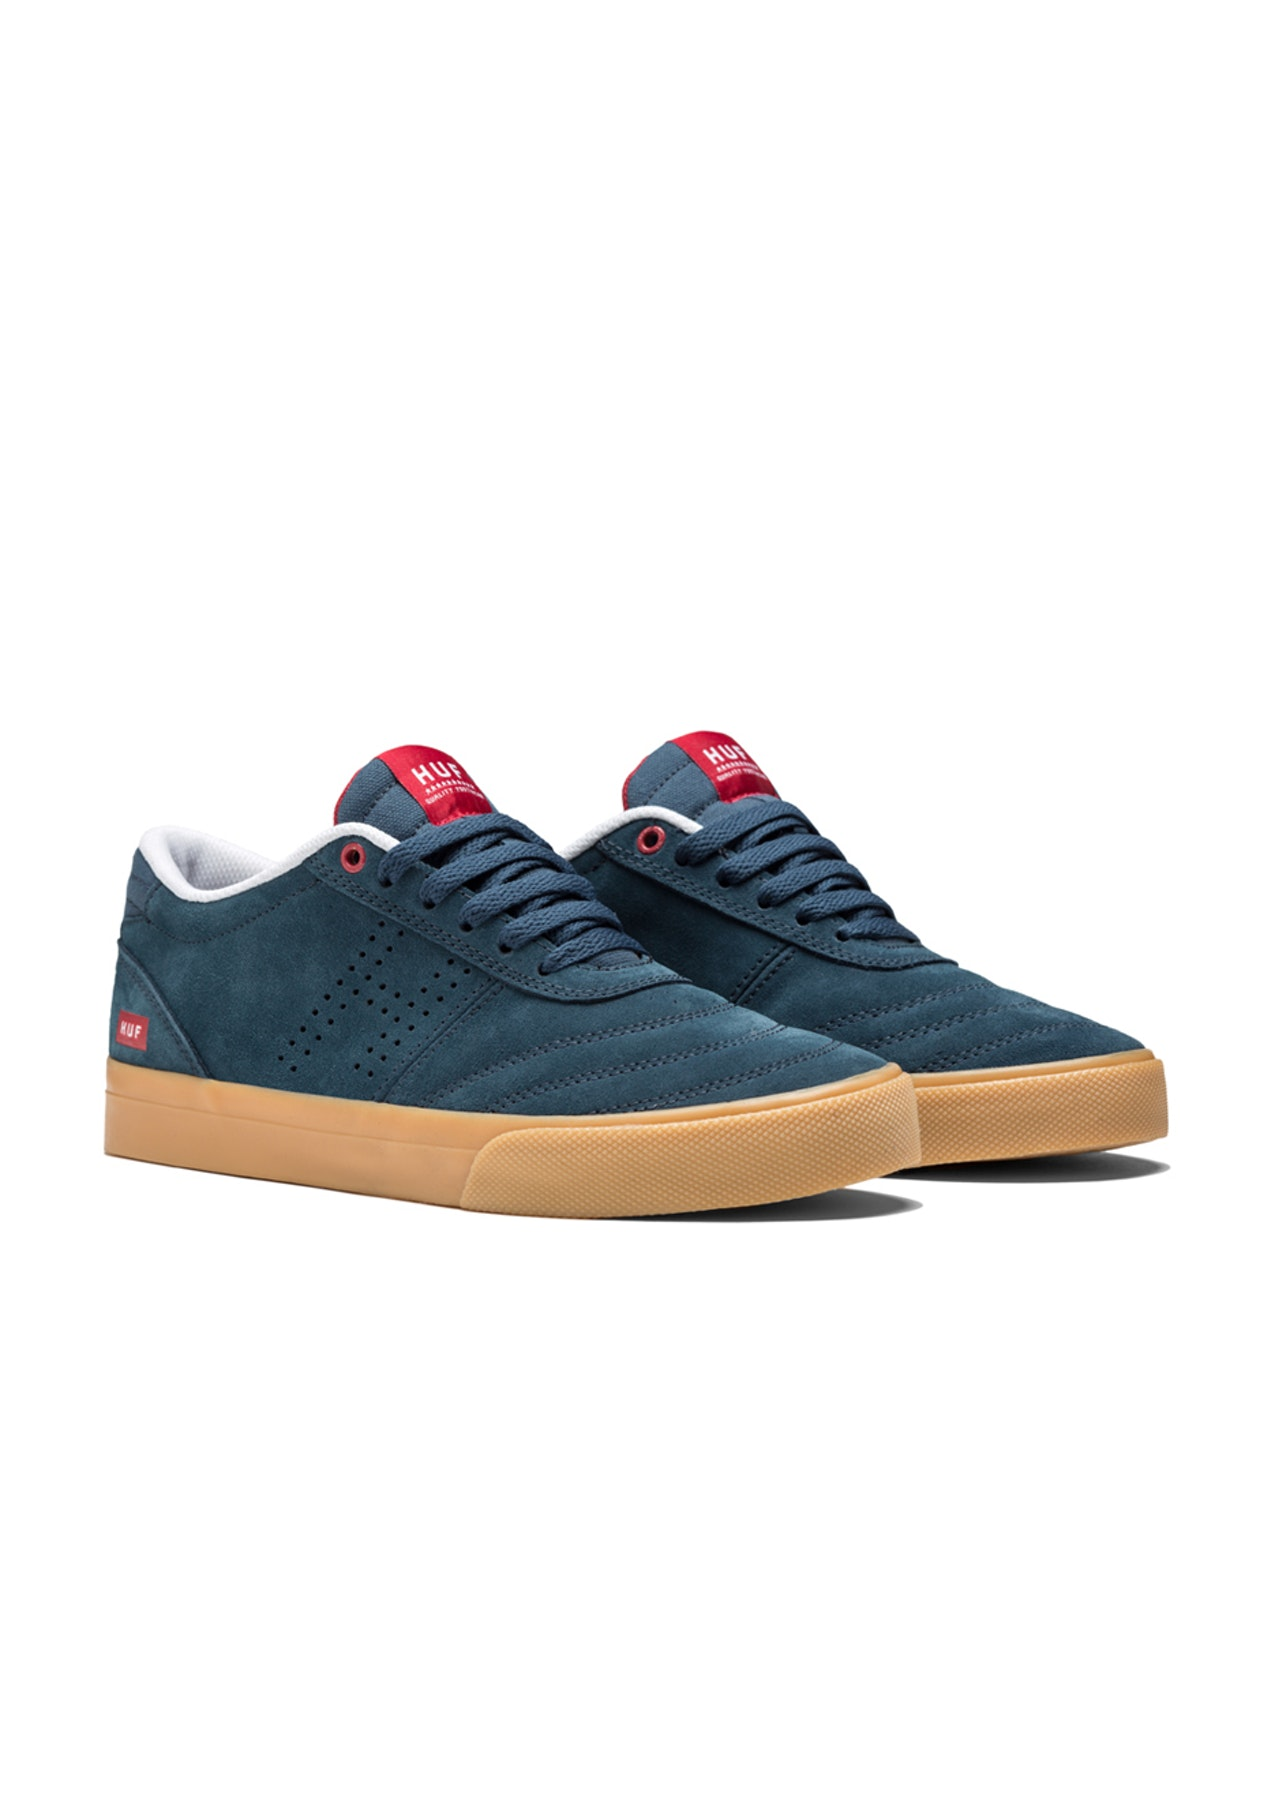 cbb2bbc54656 HUF - Galaxy - DARK NAVY   GUM - HUF   More - Onceit